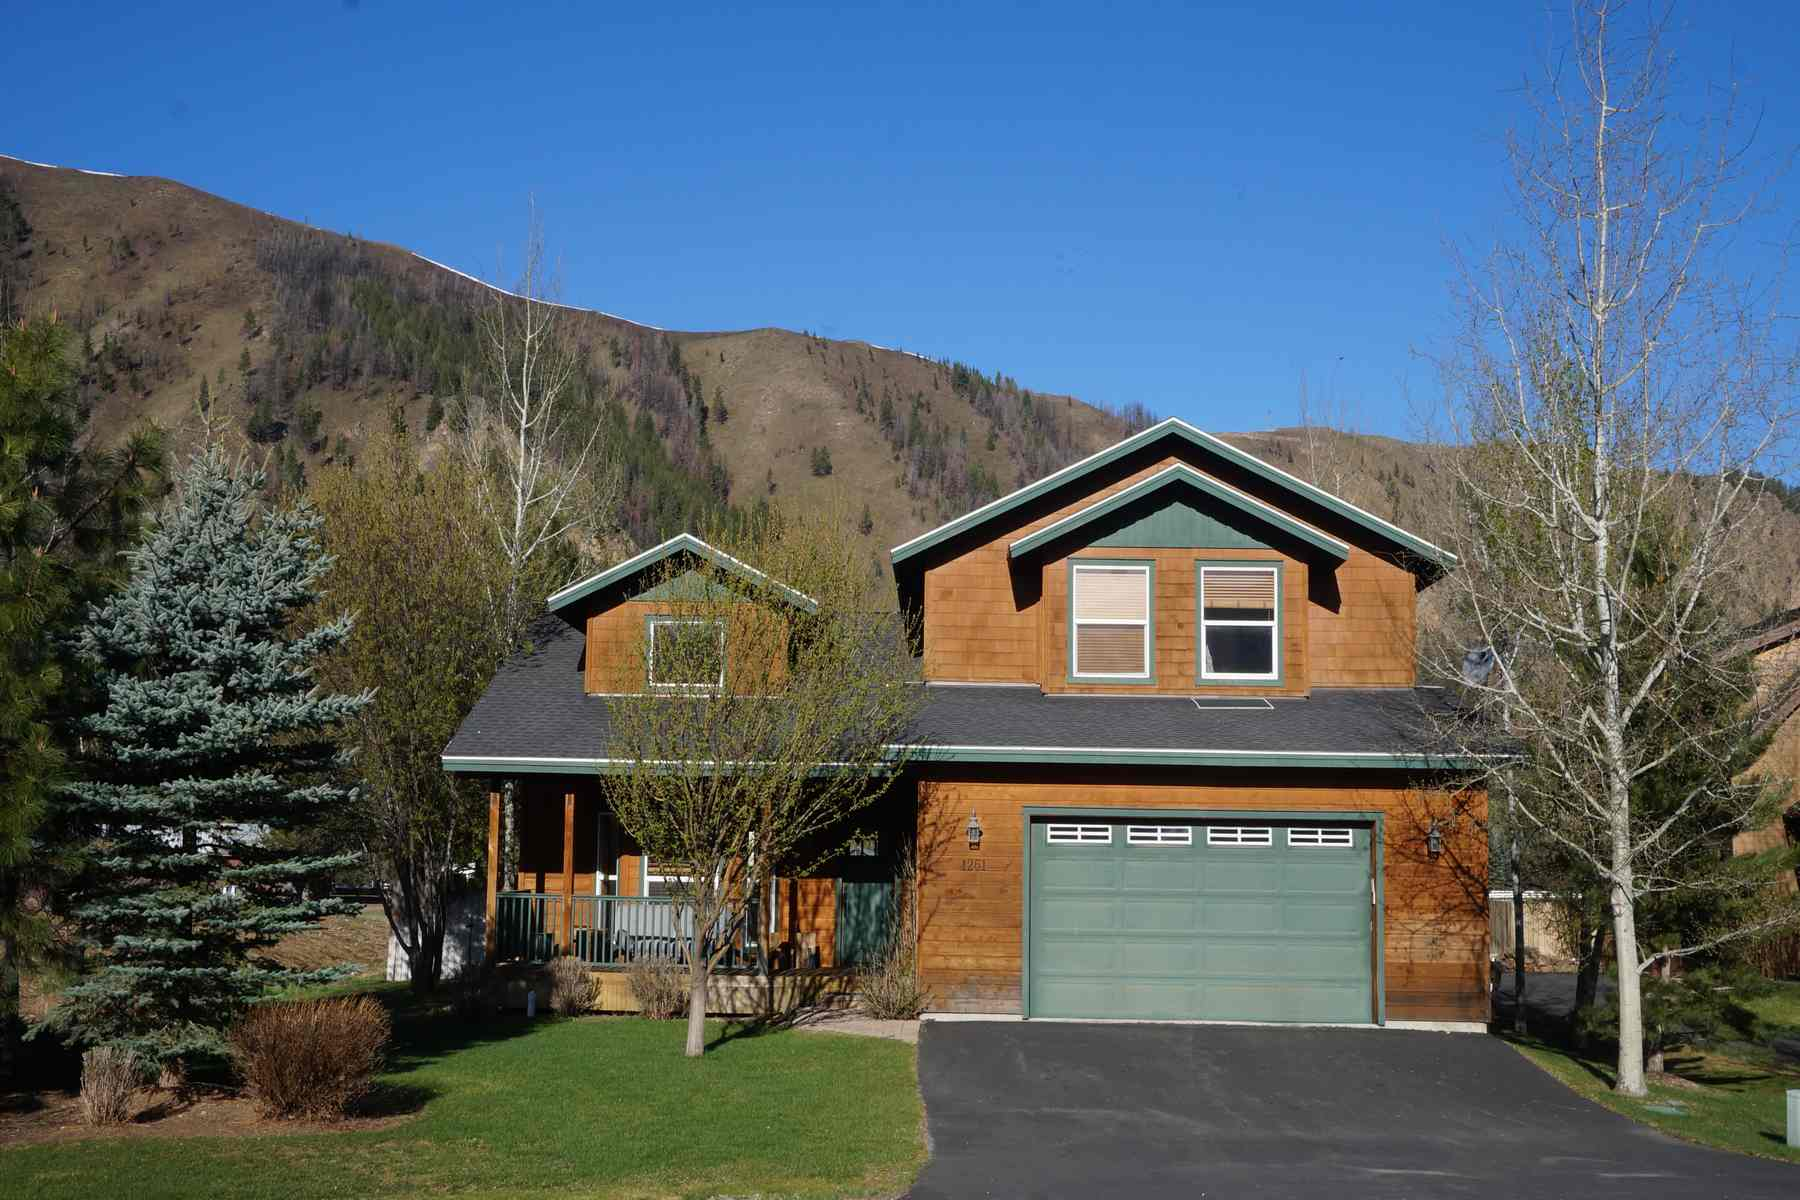 Single Family Home for Sale at Northtidge Craftsman 1261 N. Second Ave Hailey, Idaho, 83333 United States